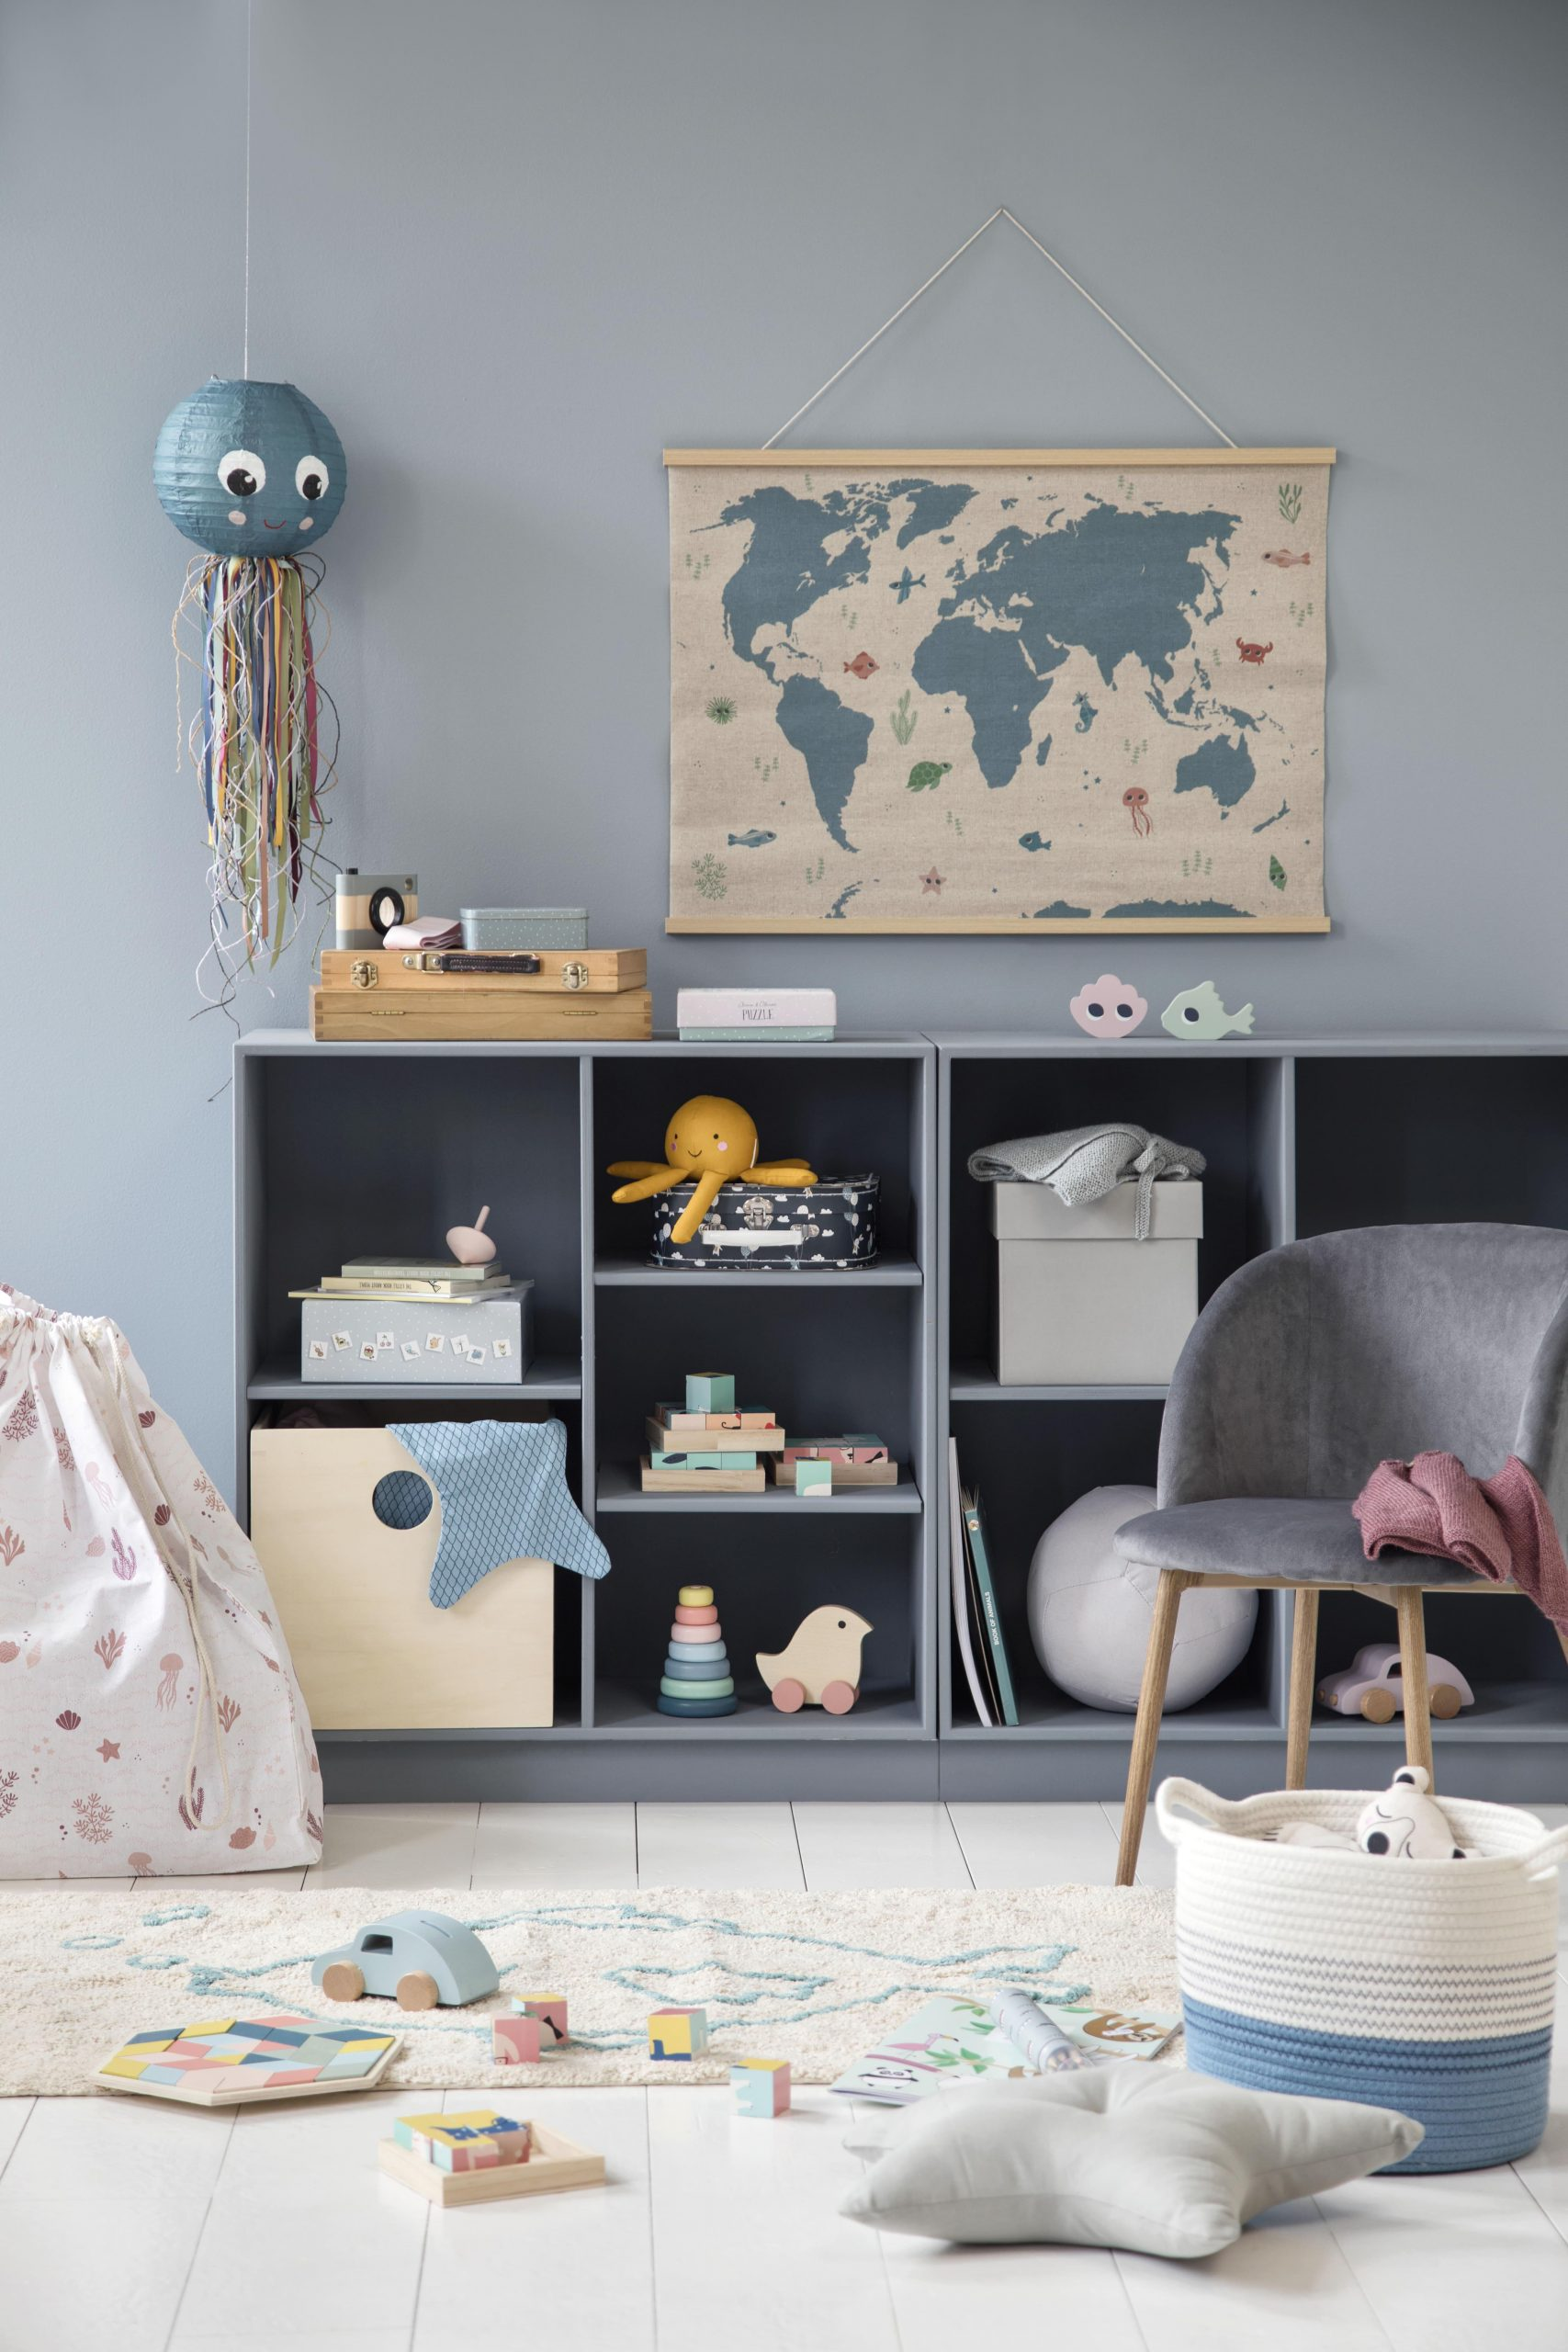 Available 23 April 2020 SostreneGrene 27 min 4480x6720 1 scaled - Sostrene Grene - Kinderinterieur en Speelgoed Collectie 2020